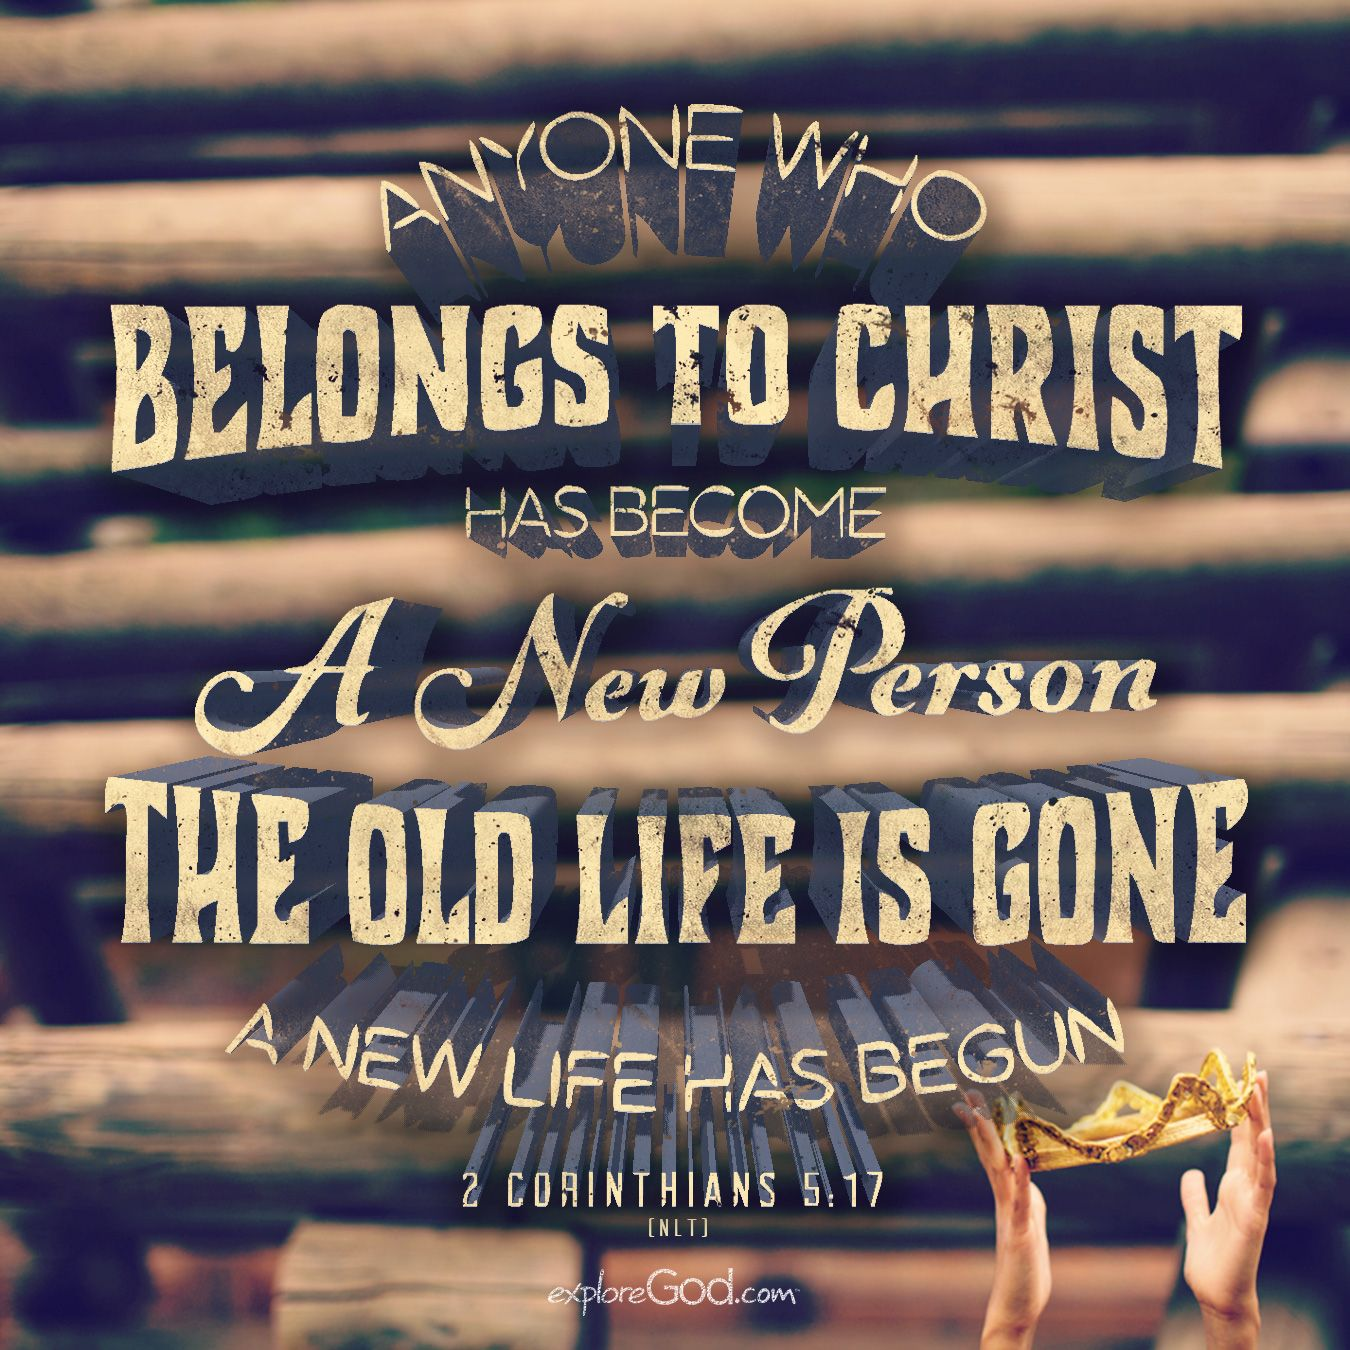 Attrayant Anyone Who Belongs To Christ Has Become A New Person. The Old Life Is Gone